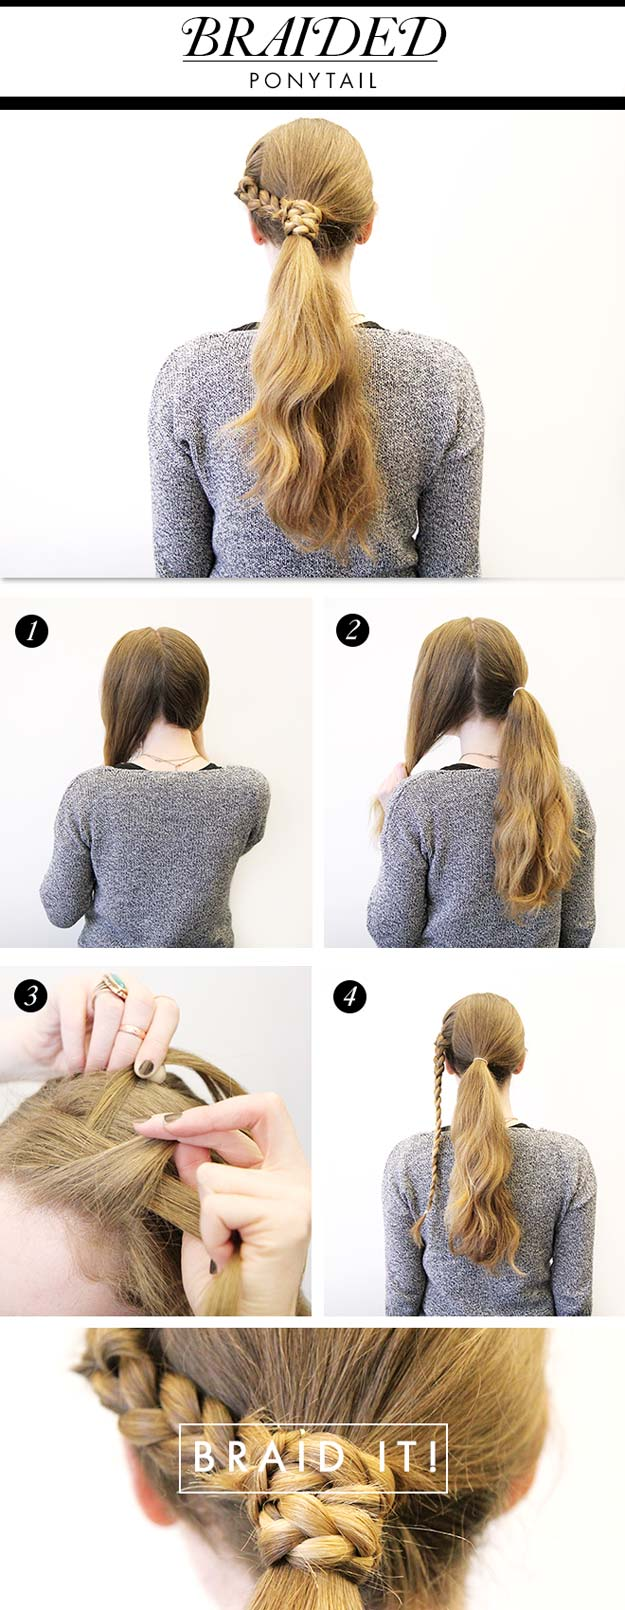 Best Hairstyles for Long Hair - Braided Pony Tail - Step by Step Tutorials for Easy Curls, Updo, Half Up, Braids and Lazy Girl Looks. Prom Ideas, Special Occasion Hair and Braiding Instructions for Teens, Teenagers and Adults, Women and Girls http://diyprojectsforteens.com/best-hairstyles-long-hair